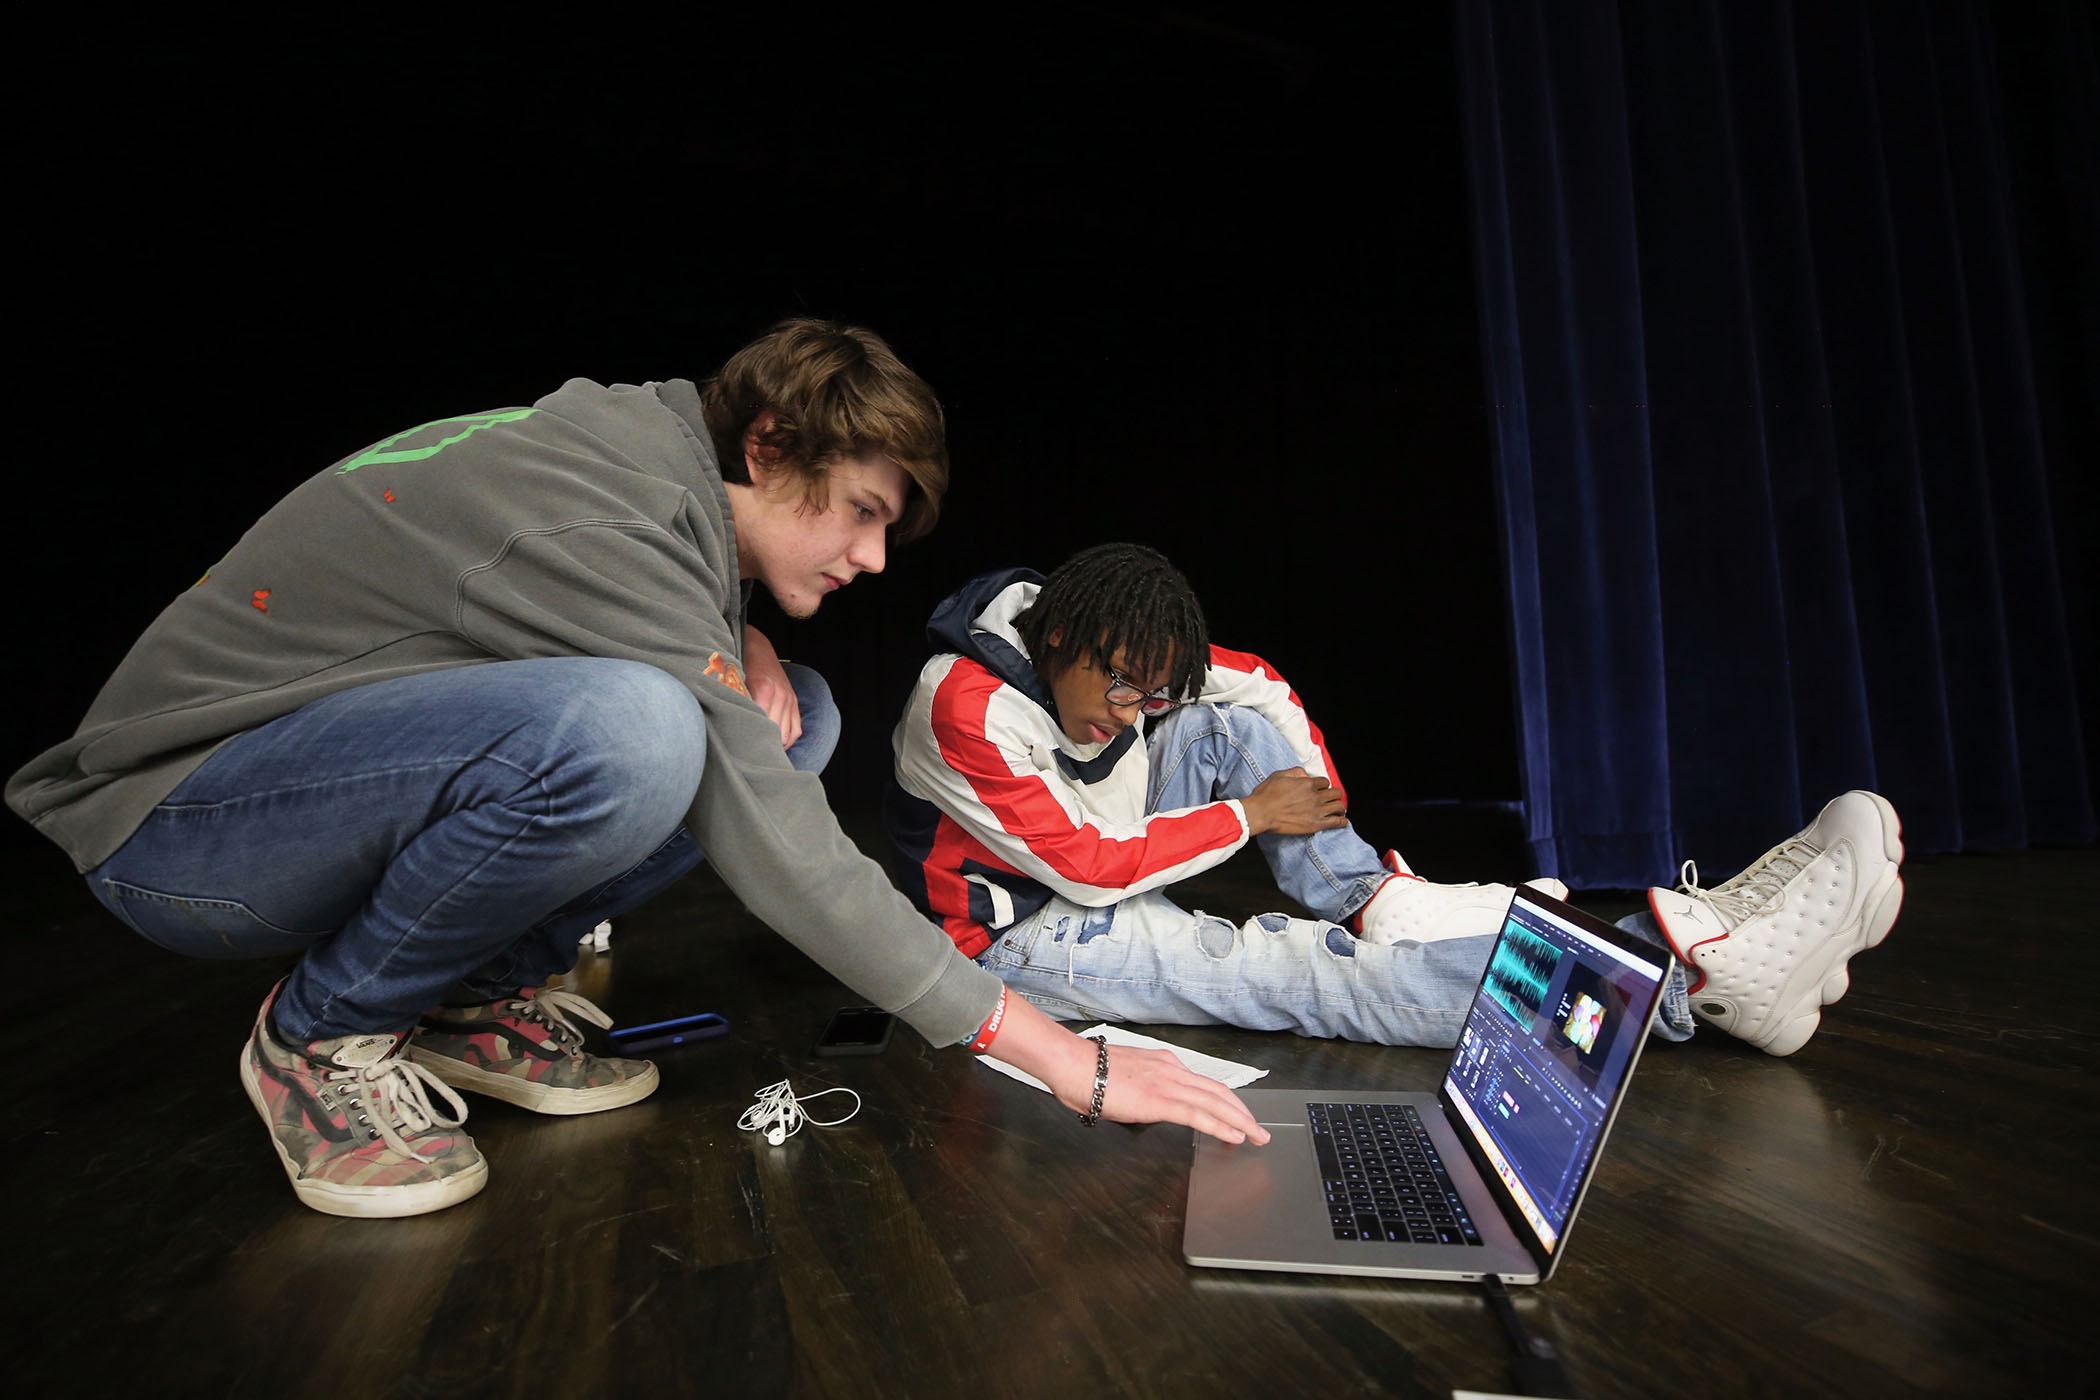 Panther Photography Javante Charles and Tristan Scarborough prepare a slide presentation for the club's first meeting.